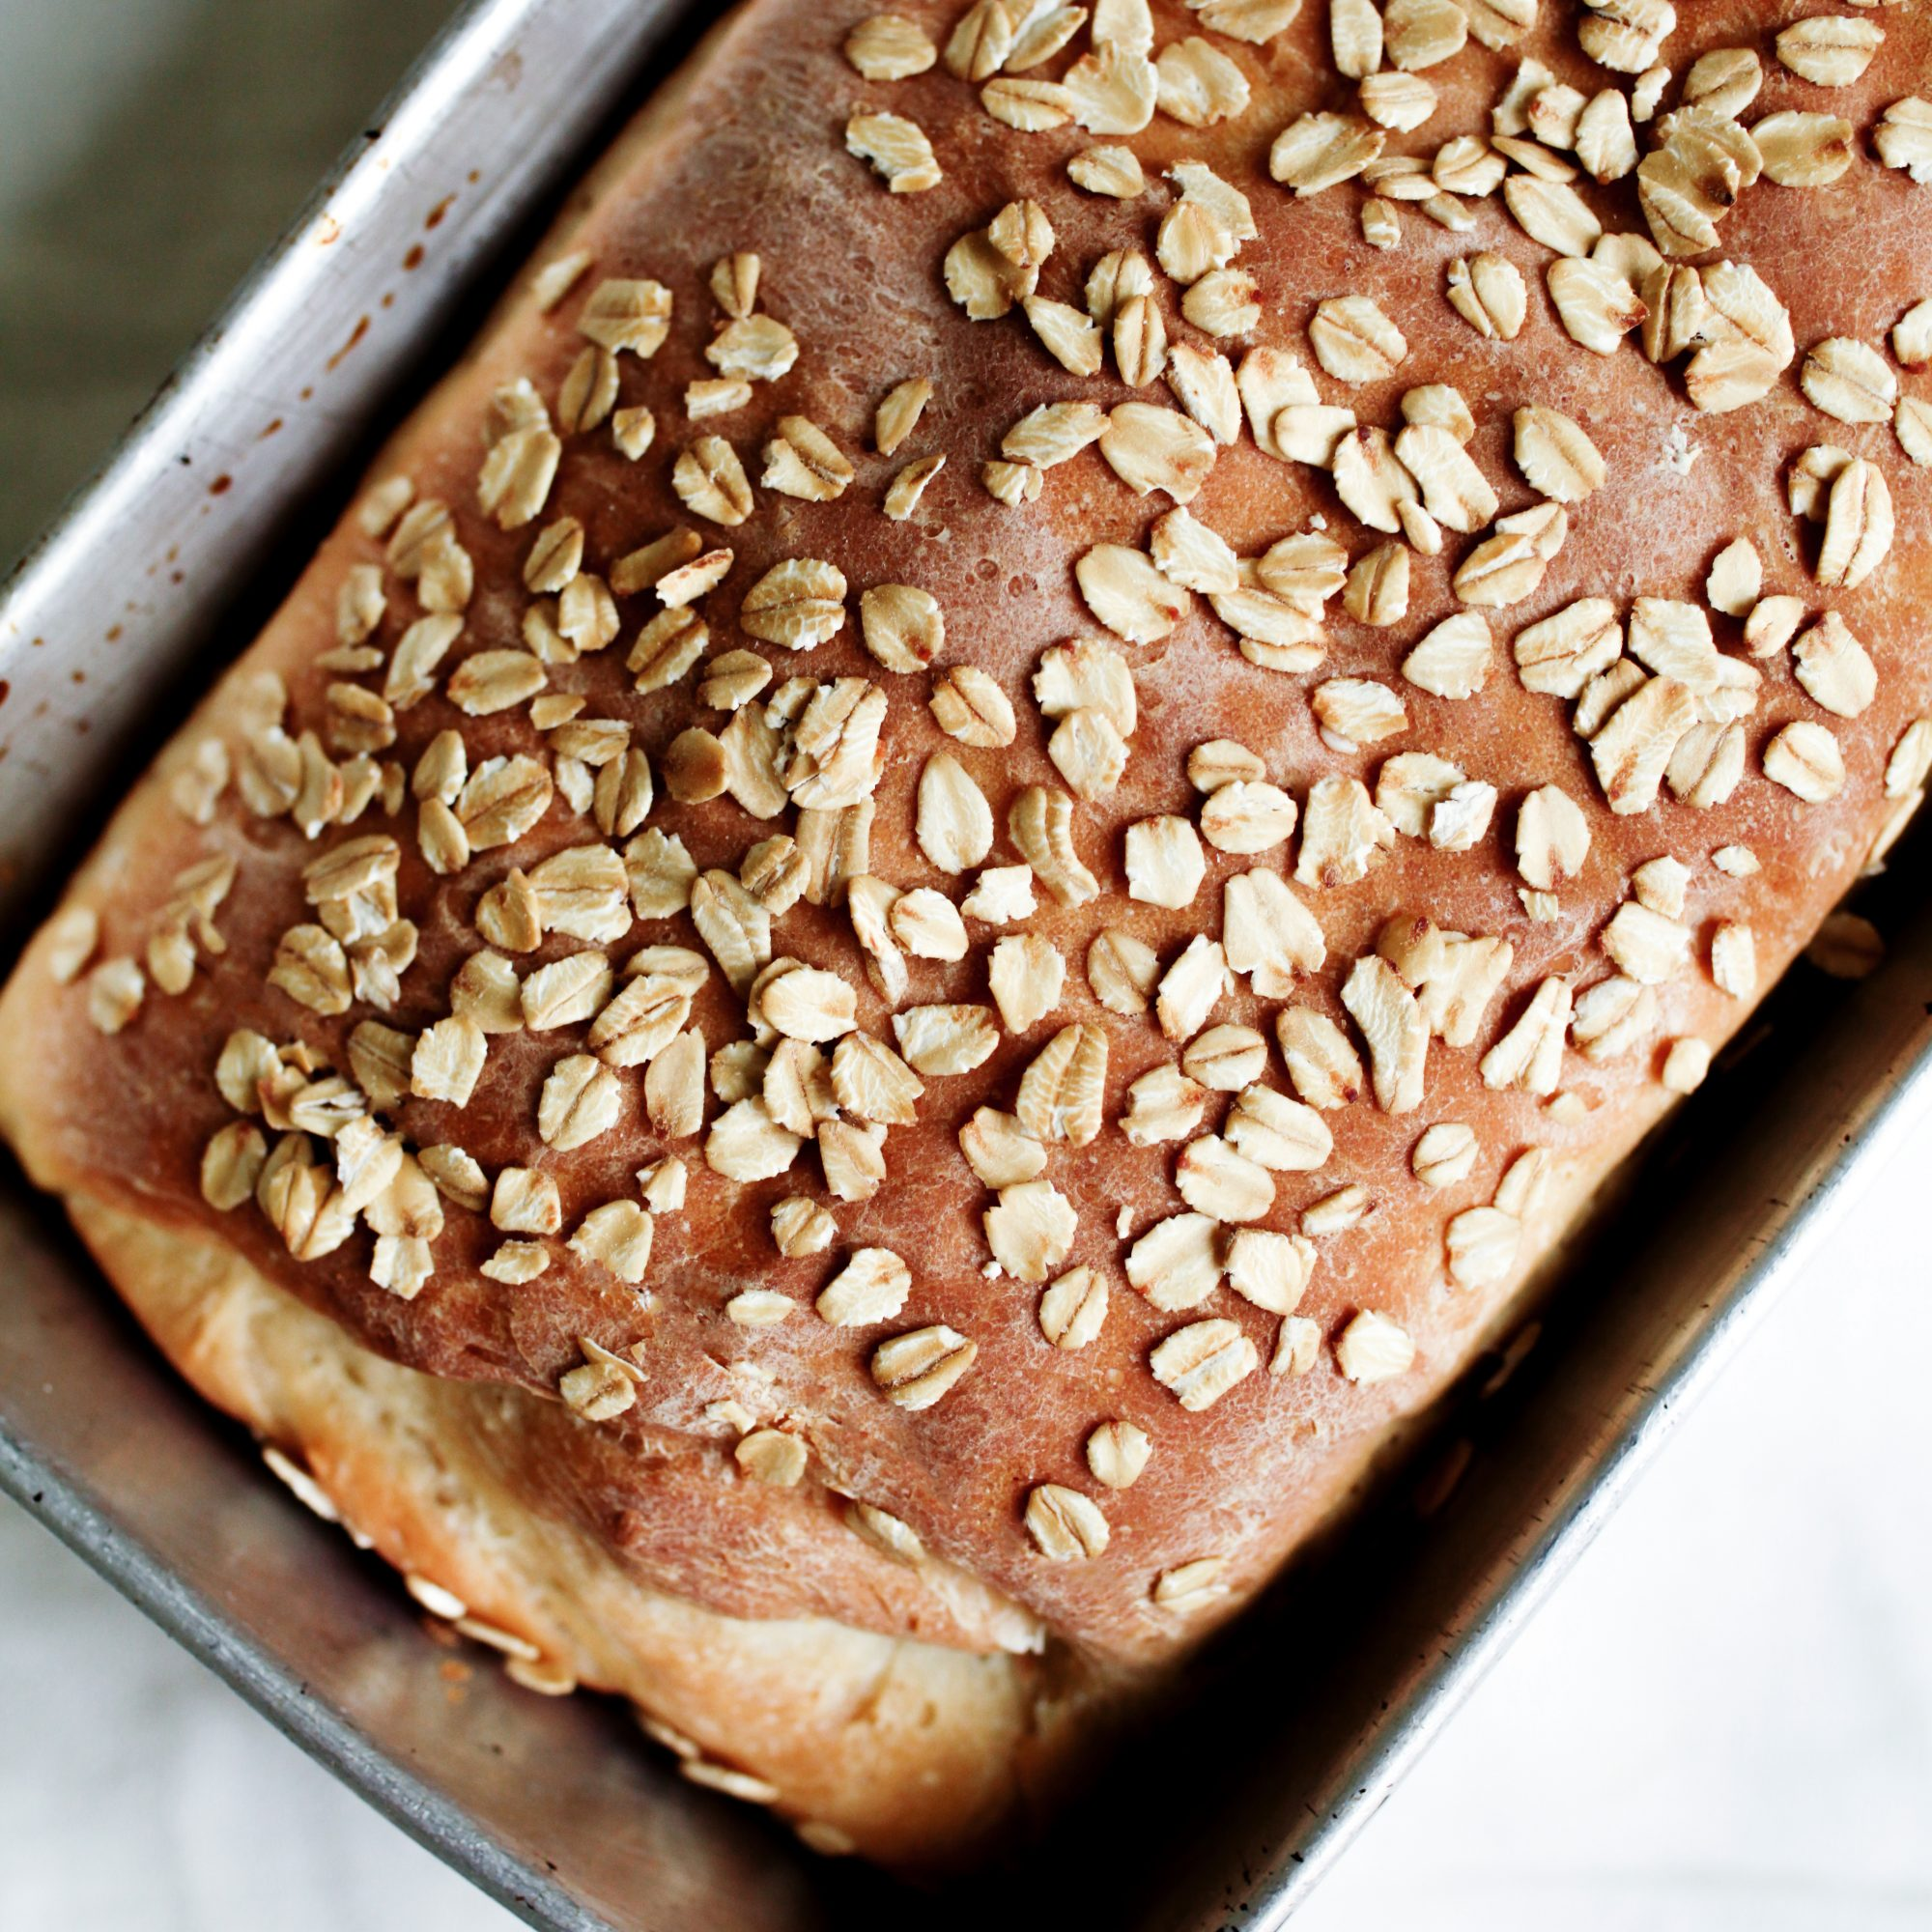 Honey, Nuts and Oats Gluten-Free Sandwich Bread